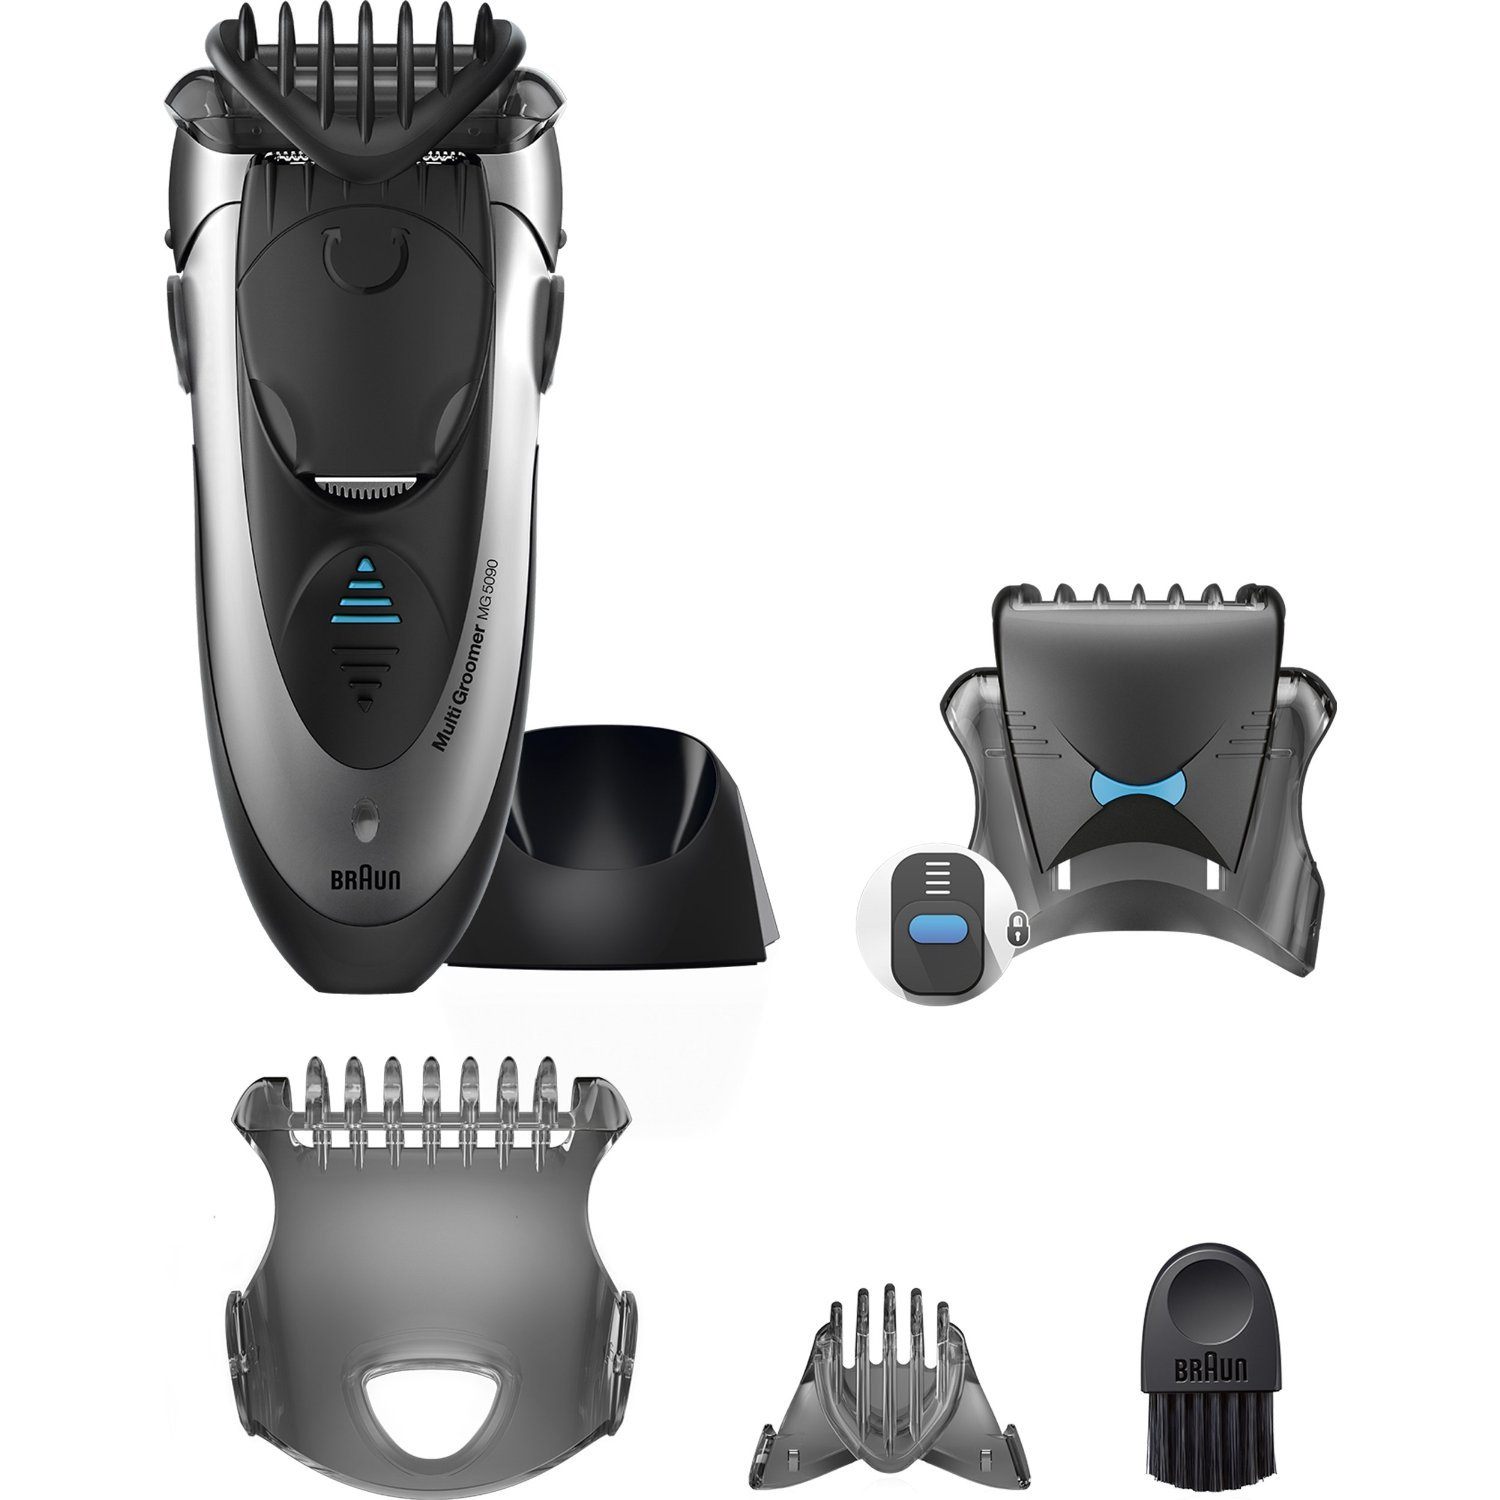 Braun Cordless WASHABLE Mens Hair Trimmer and Multi Groomer with Multiple Attachment Combs and BONUS FREE Body Spray Included by Old Spice